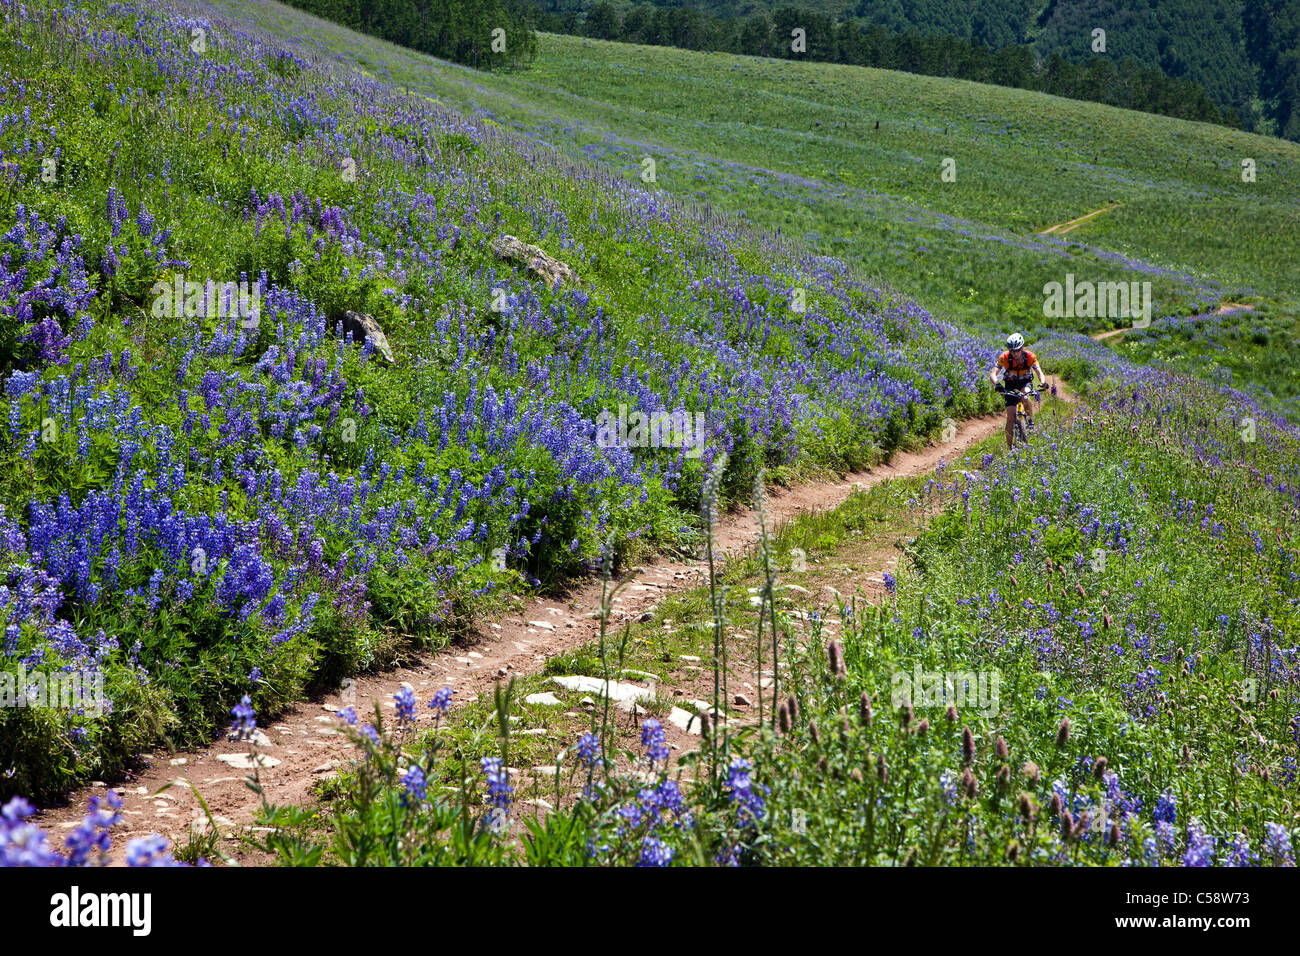 Mountain biker riding amongst Blue Lupine wildflowers on the Brush Creek Road near Crested Butte, Colorado, USA - Stock Image